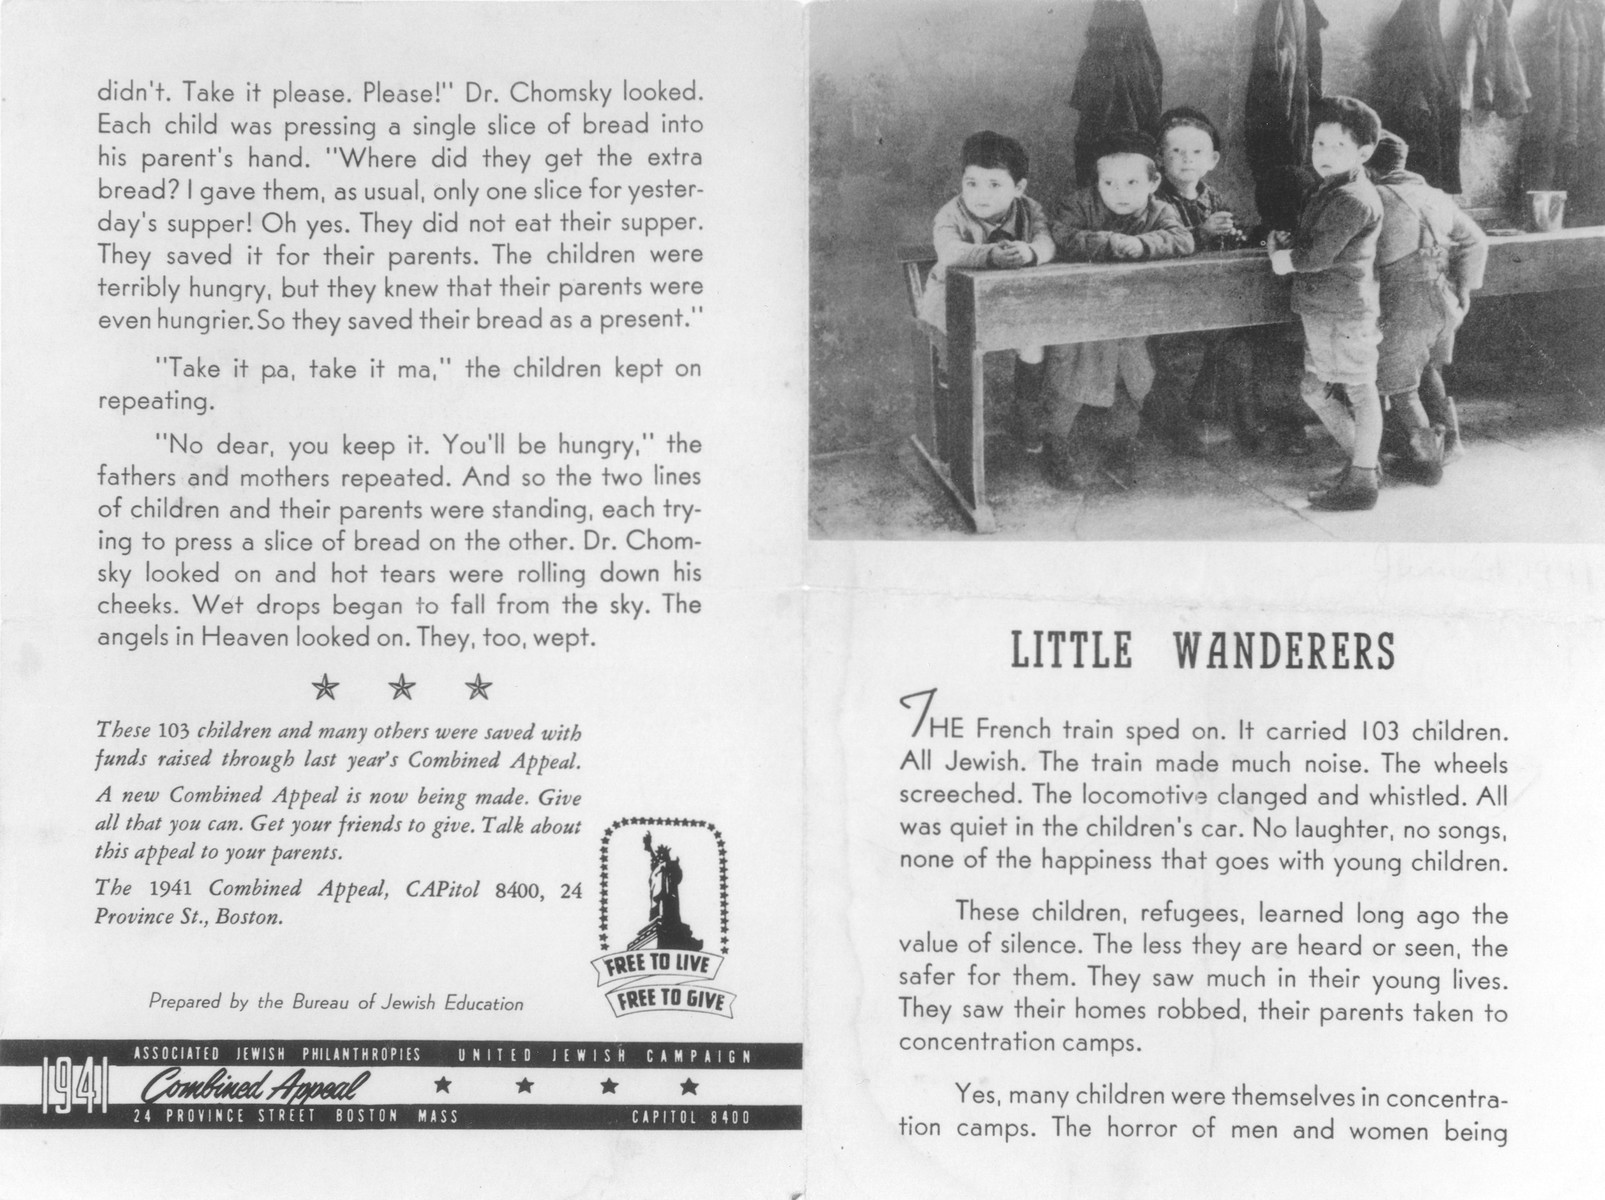 Fundraising pamphlet issued by the Combined Appeal in Boston to raise money for Jewish refugee children who came to the United States from France.